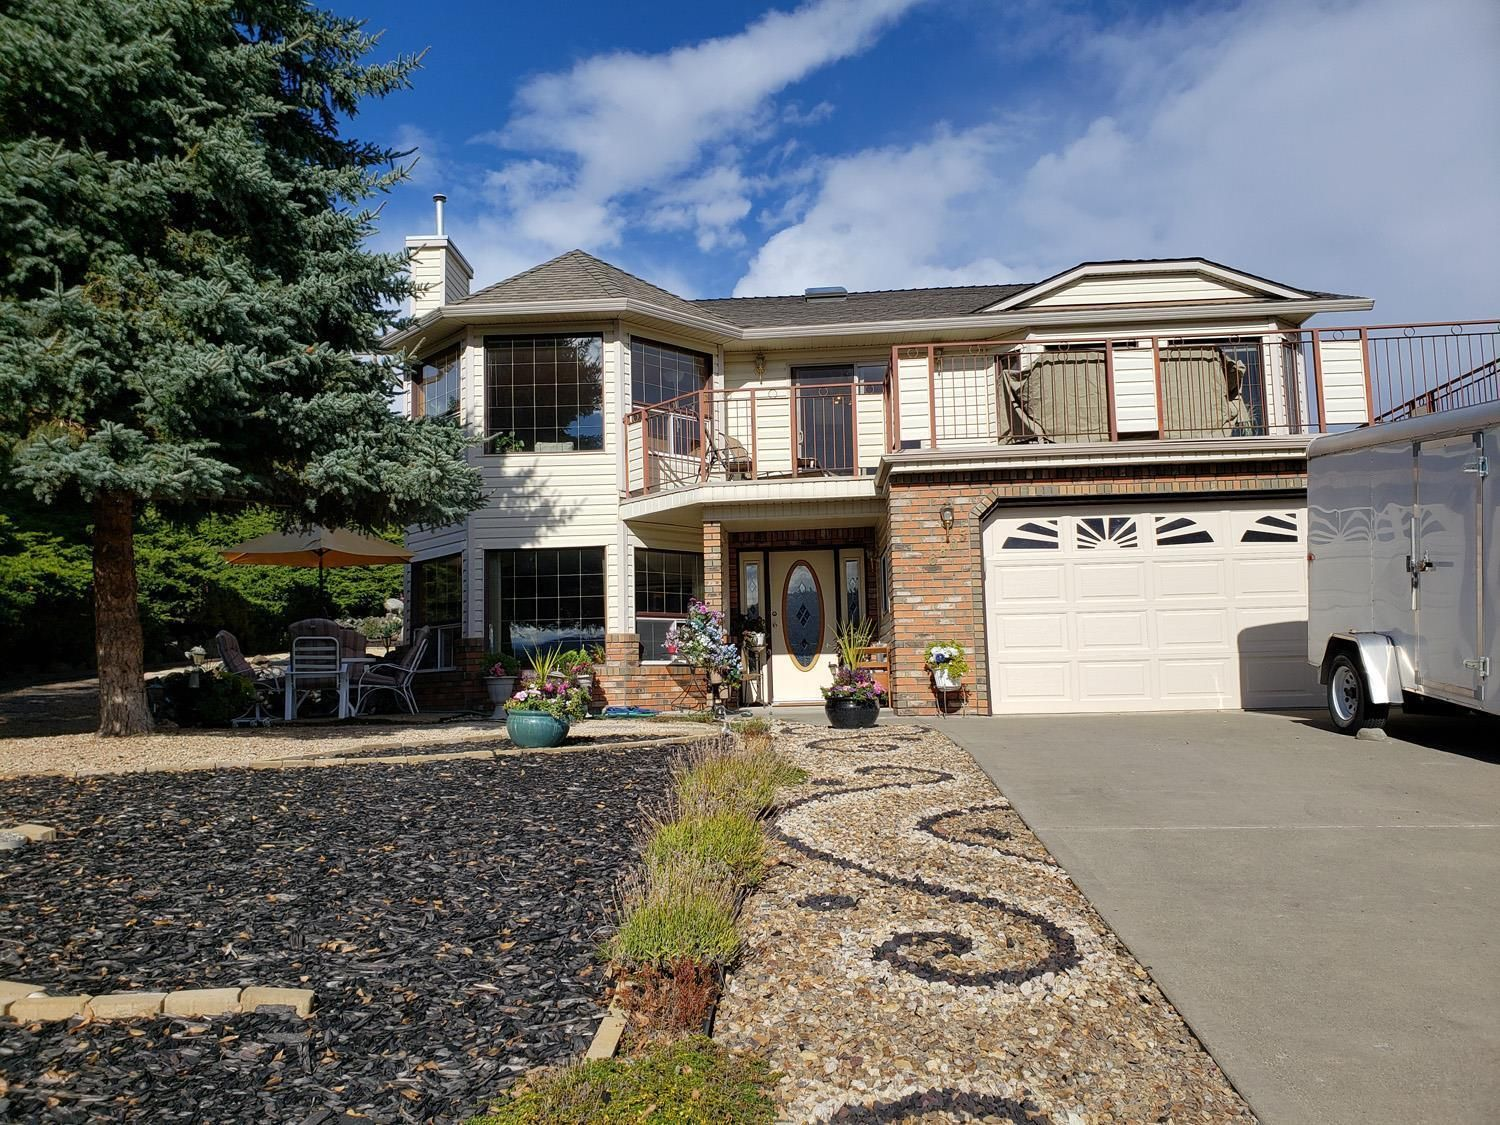 Main Photo: 6805 Cameo Drive, N in Vernon: House for sale : MLS®# 10241392